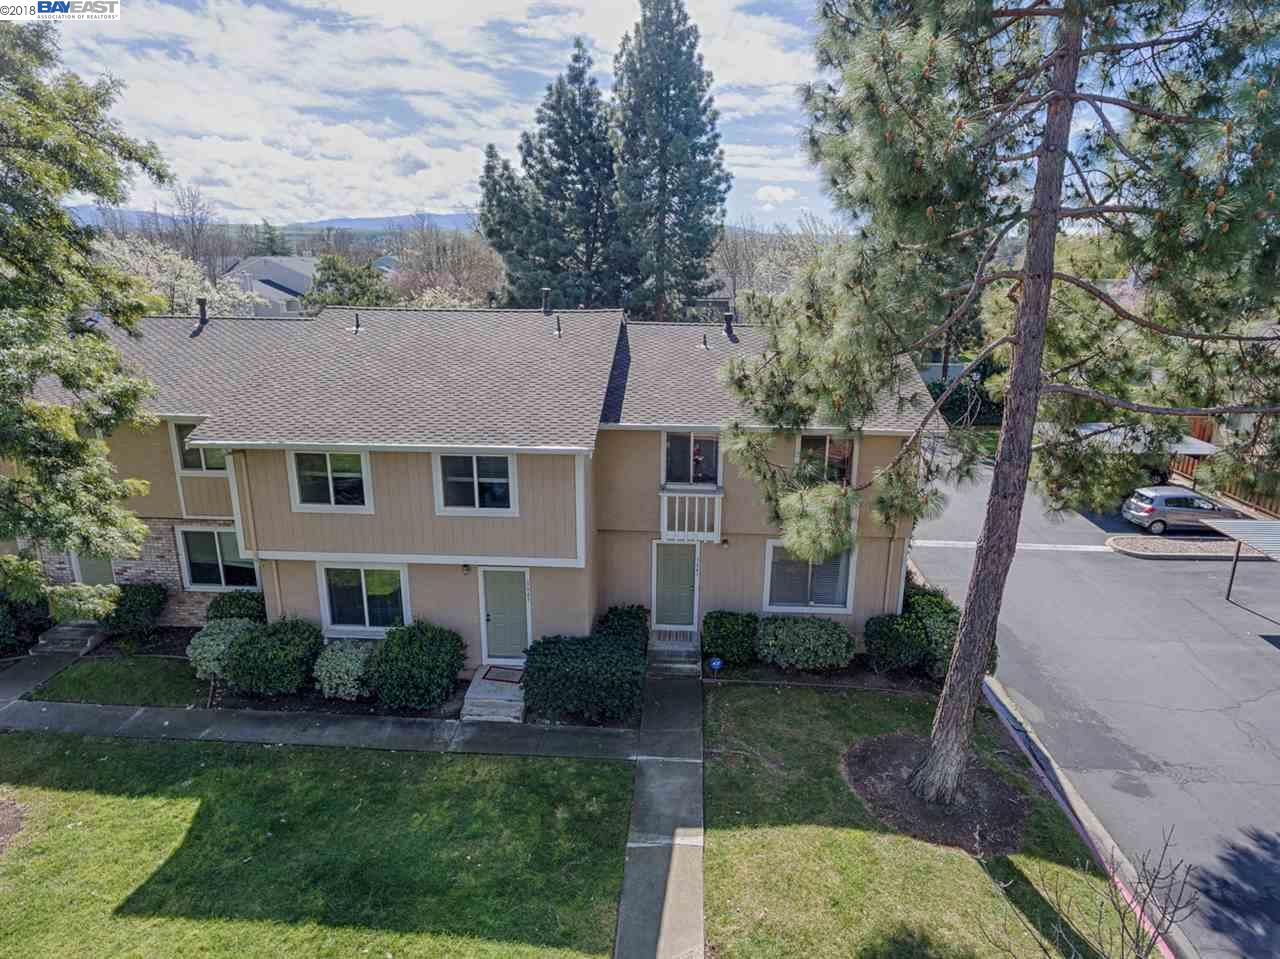 Townhouse for Sale at 3641 Carrigan Cmn 3641 Carrigan Cmn Livermore, California 94550 United States